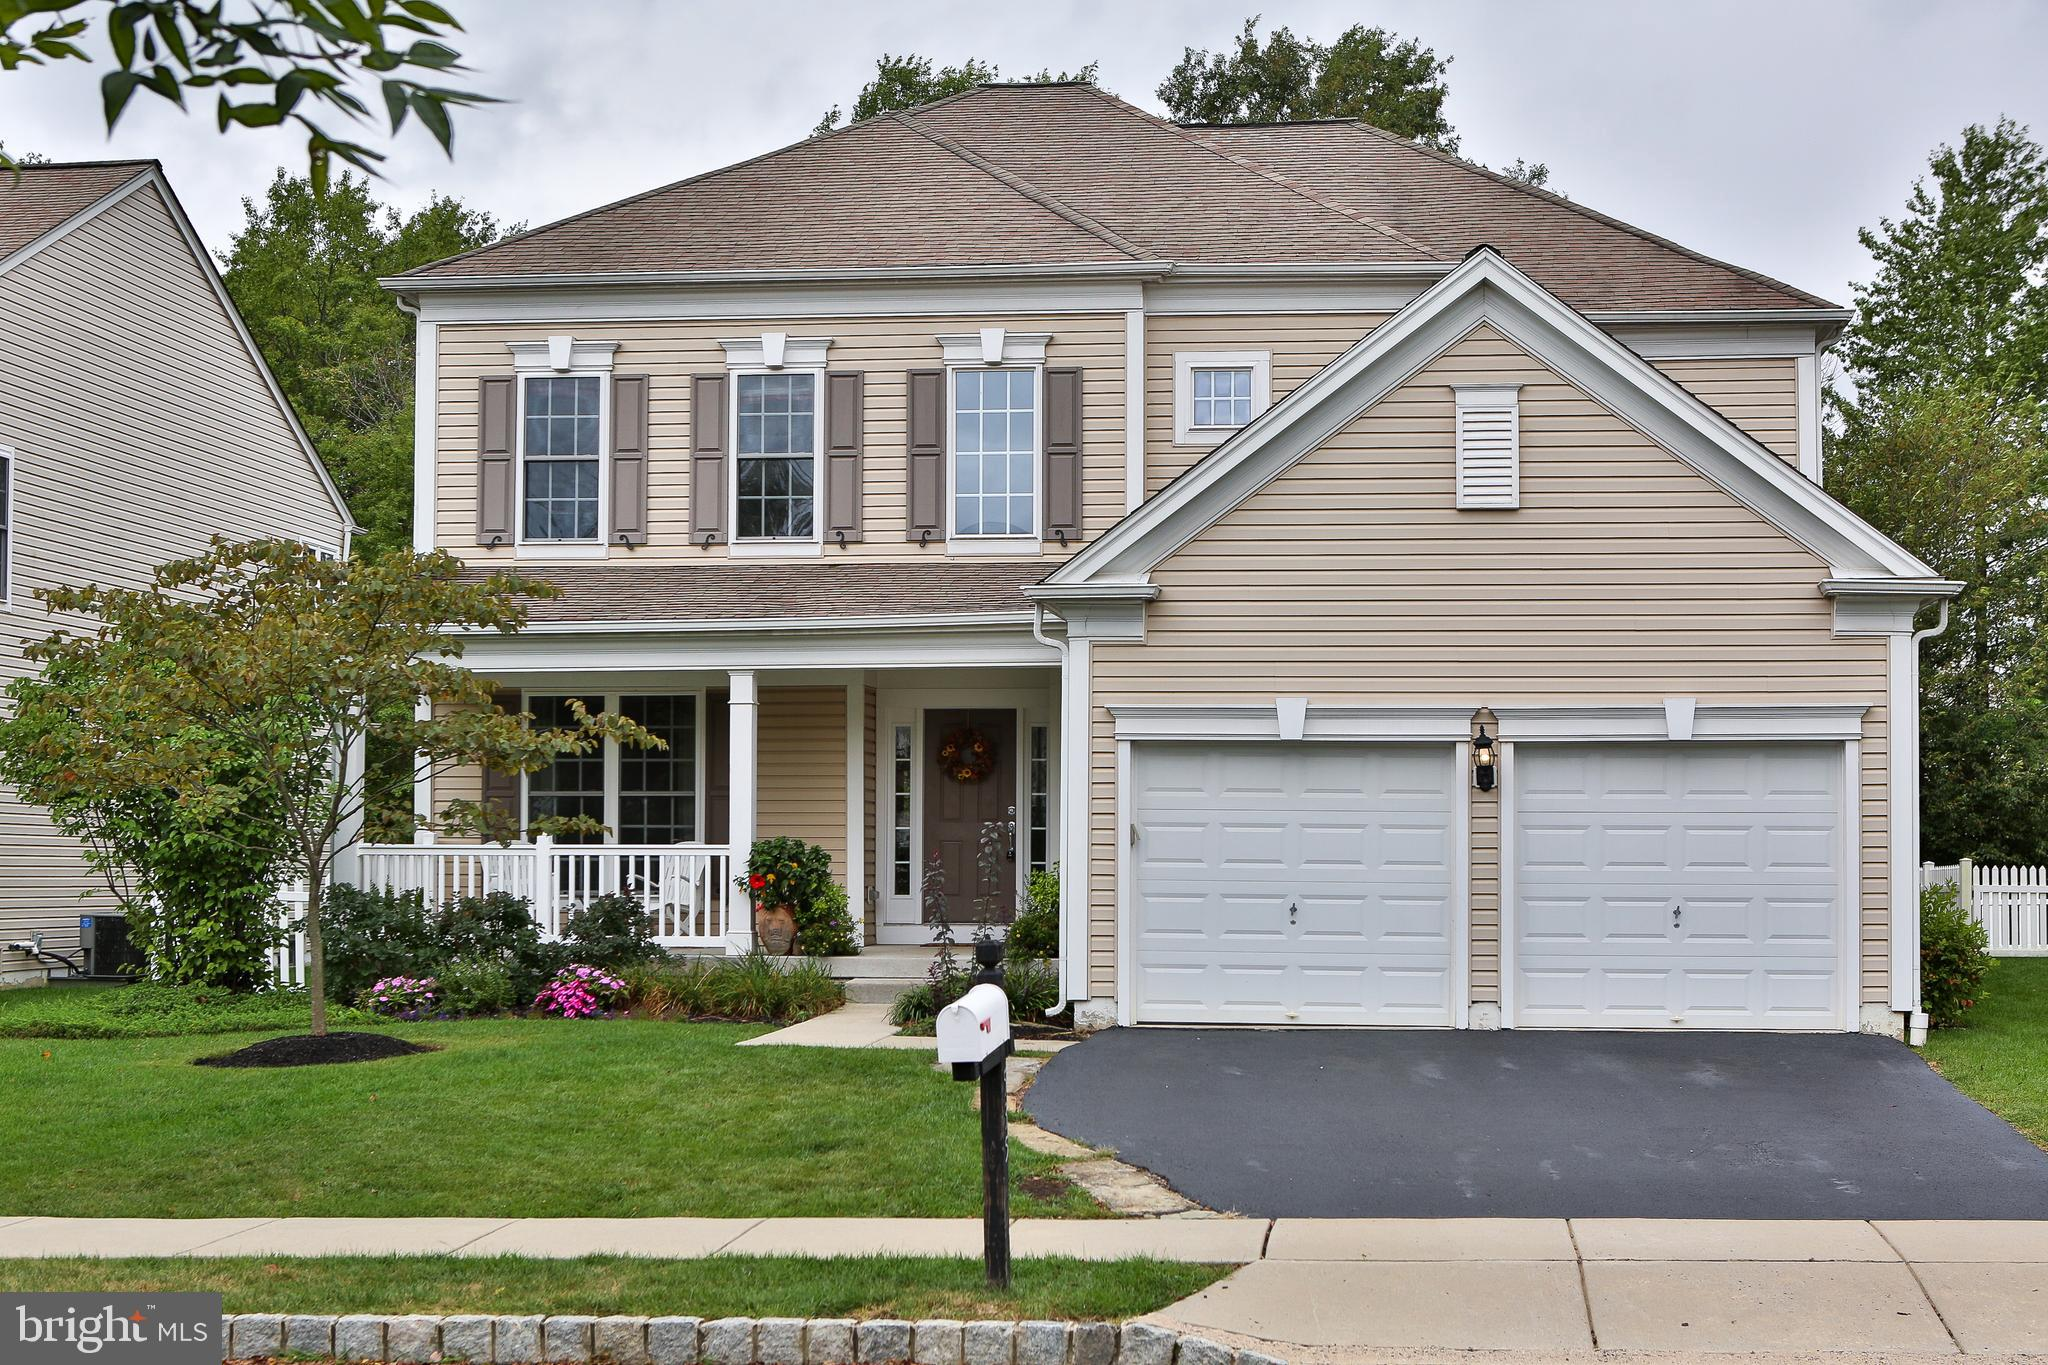 535 SHOEMAKER DRIVE, FOUNTAINVILLE, PA 18923